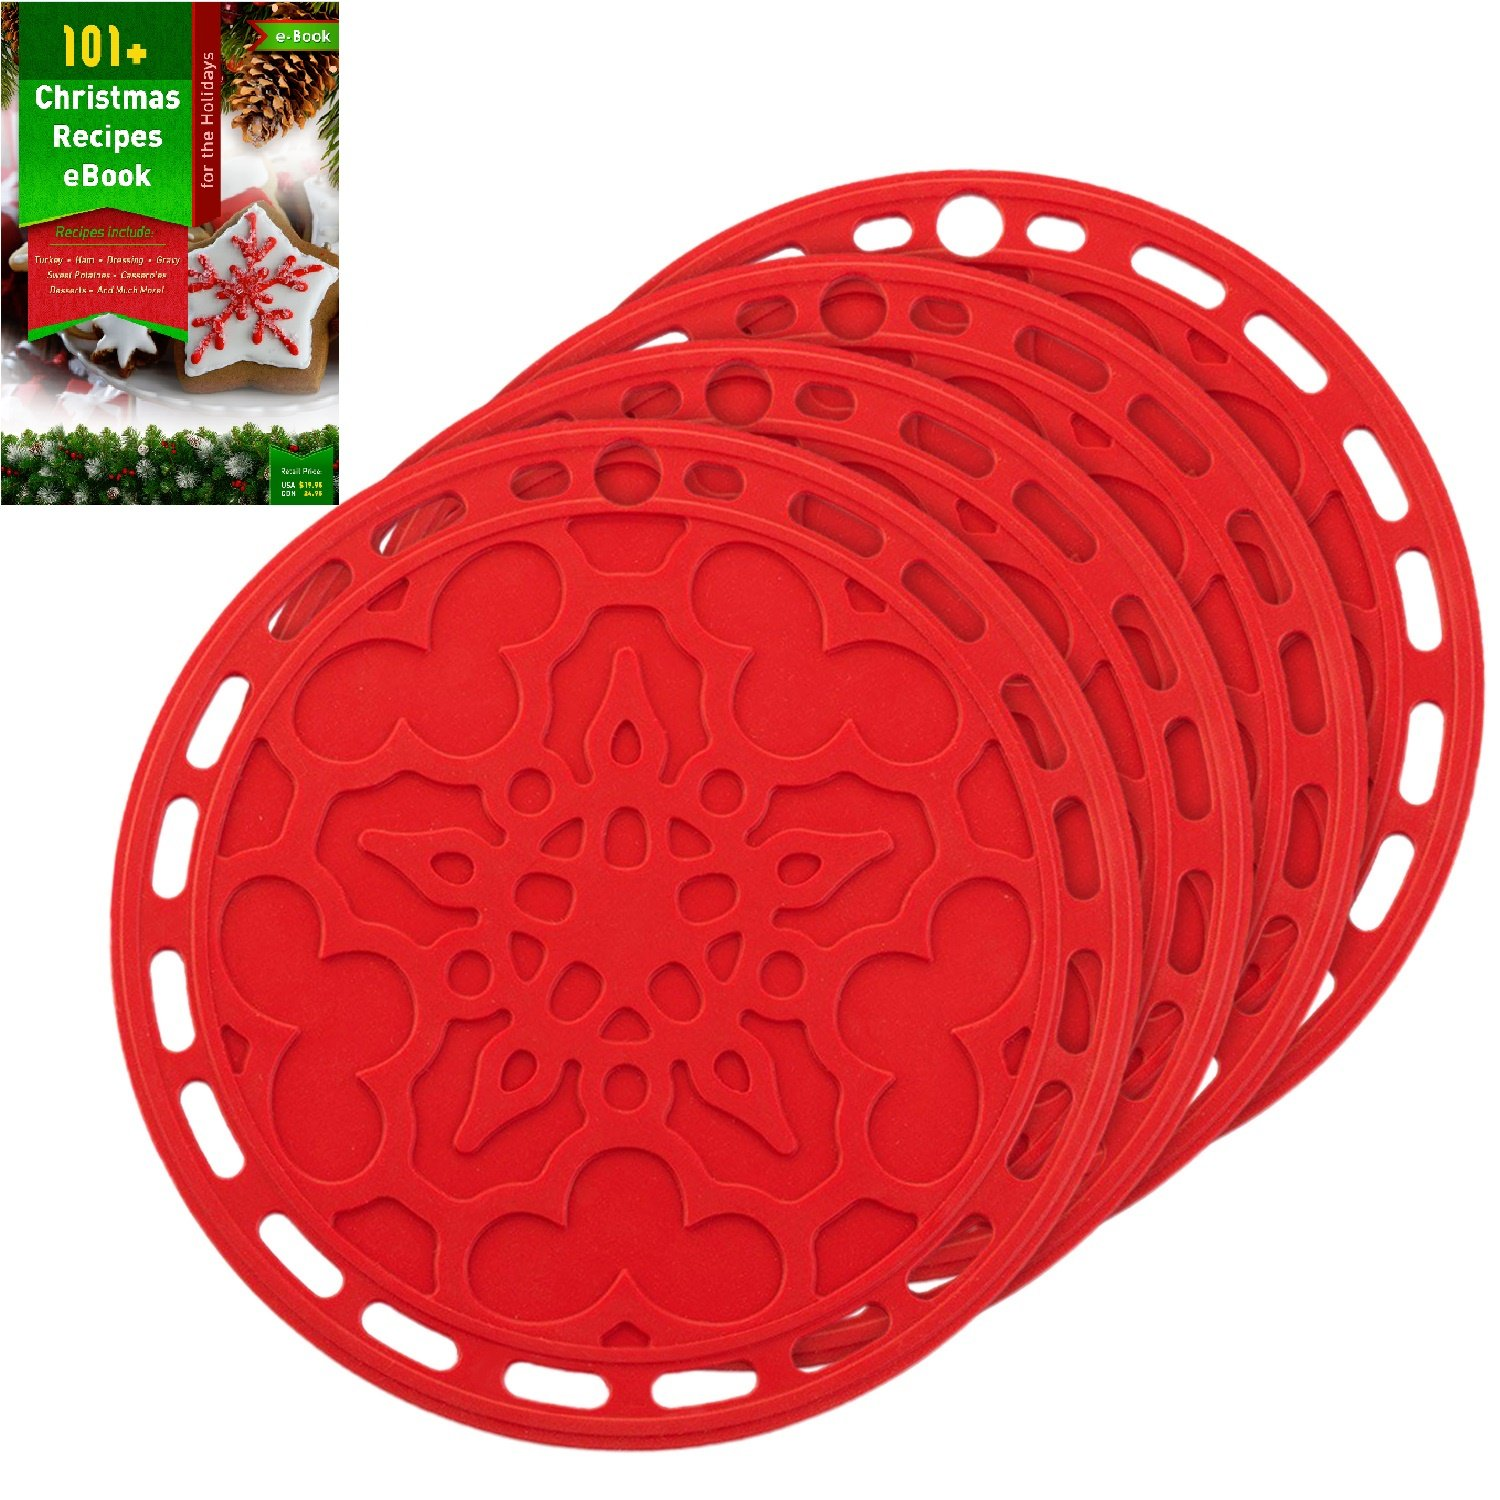 Silicone Hot Pads (Set Of 4)   6 In 1 Multi Purpose Kitchen Tool, Pot Holder,  Splatter Guard, Microwave Cover, Jar Opener, Decorative Trivet, Red, 8  Inches.